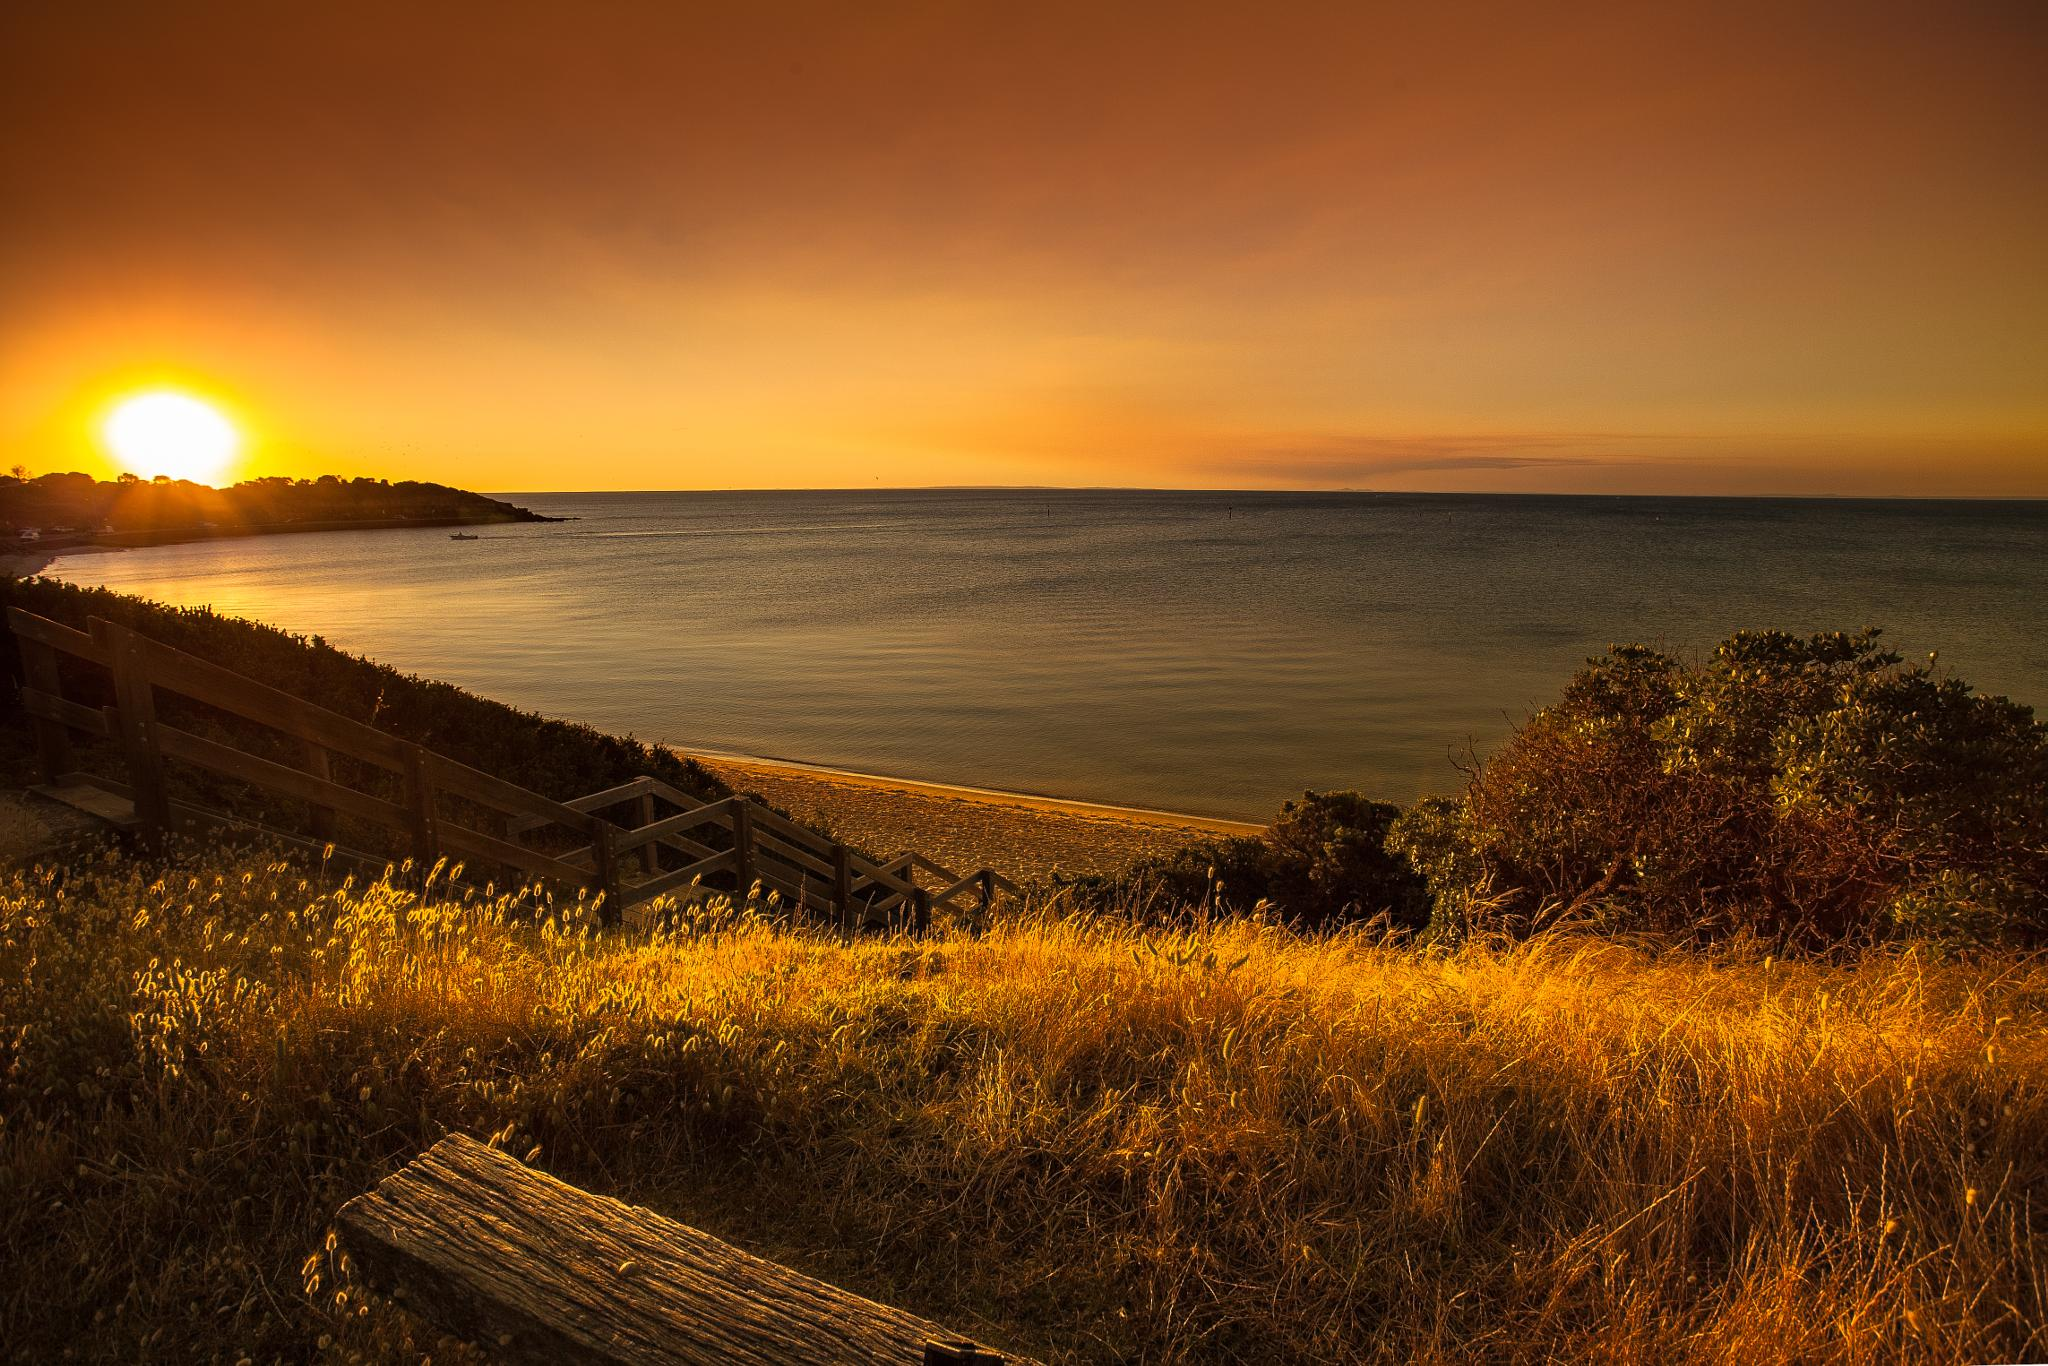 Sunset over Fisermans Beach by johnmccoyphotography